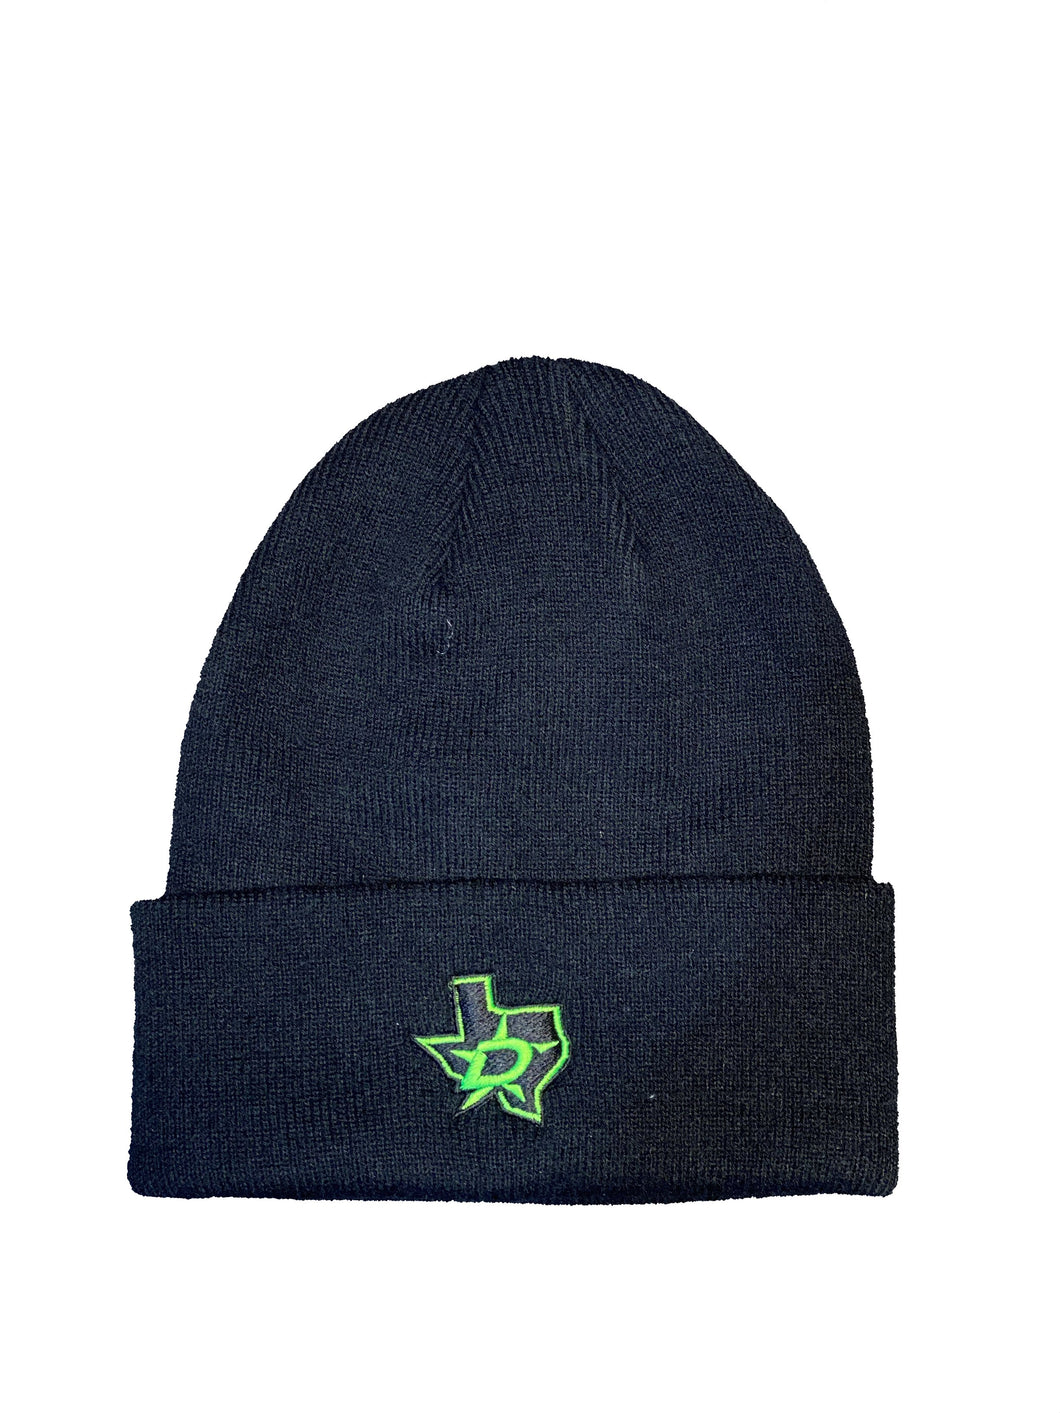 DALLAS STARS ADIDAS BLACKOUT 3RD CUFFED KNIT